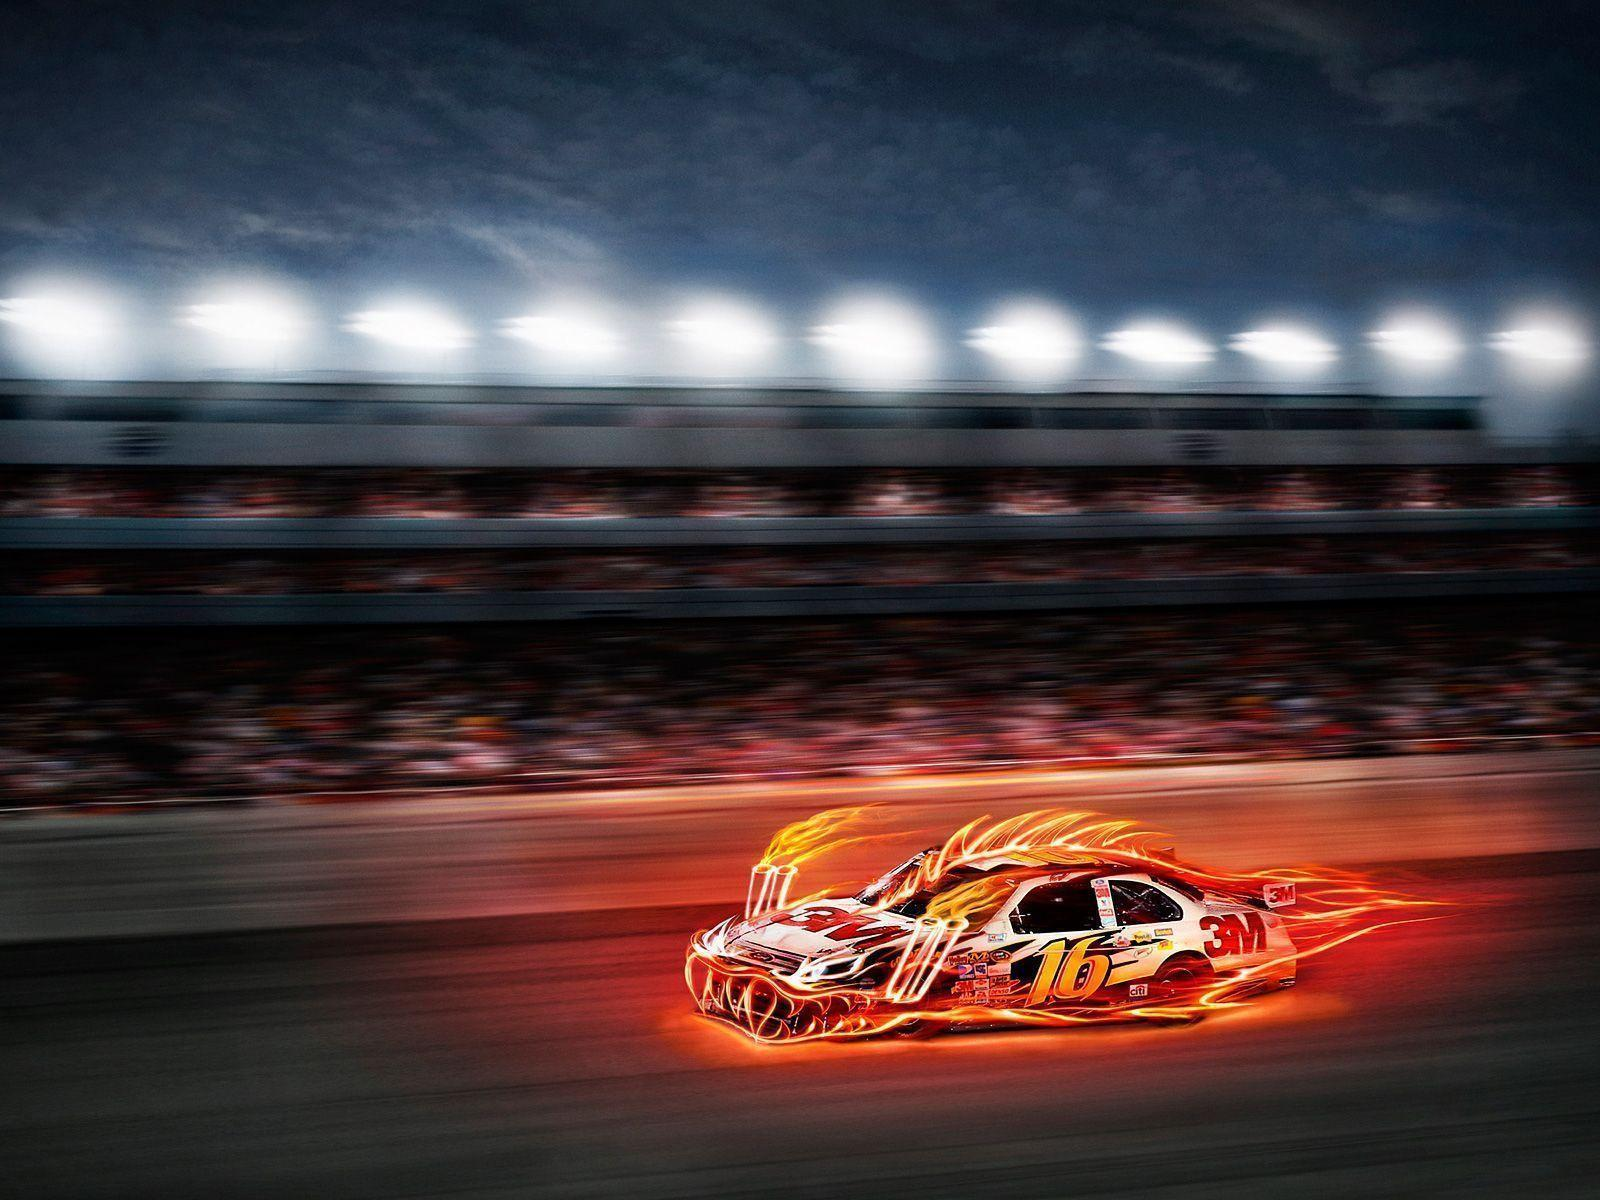 50 Nascar Hd Wallpapers On Wallpapersafari: Nascar Wallpapers